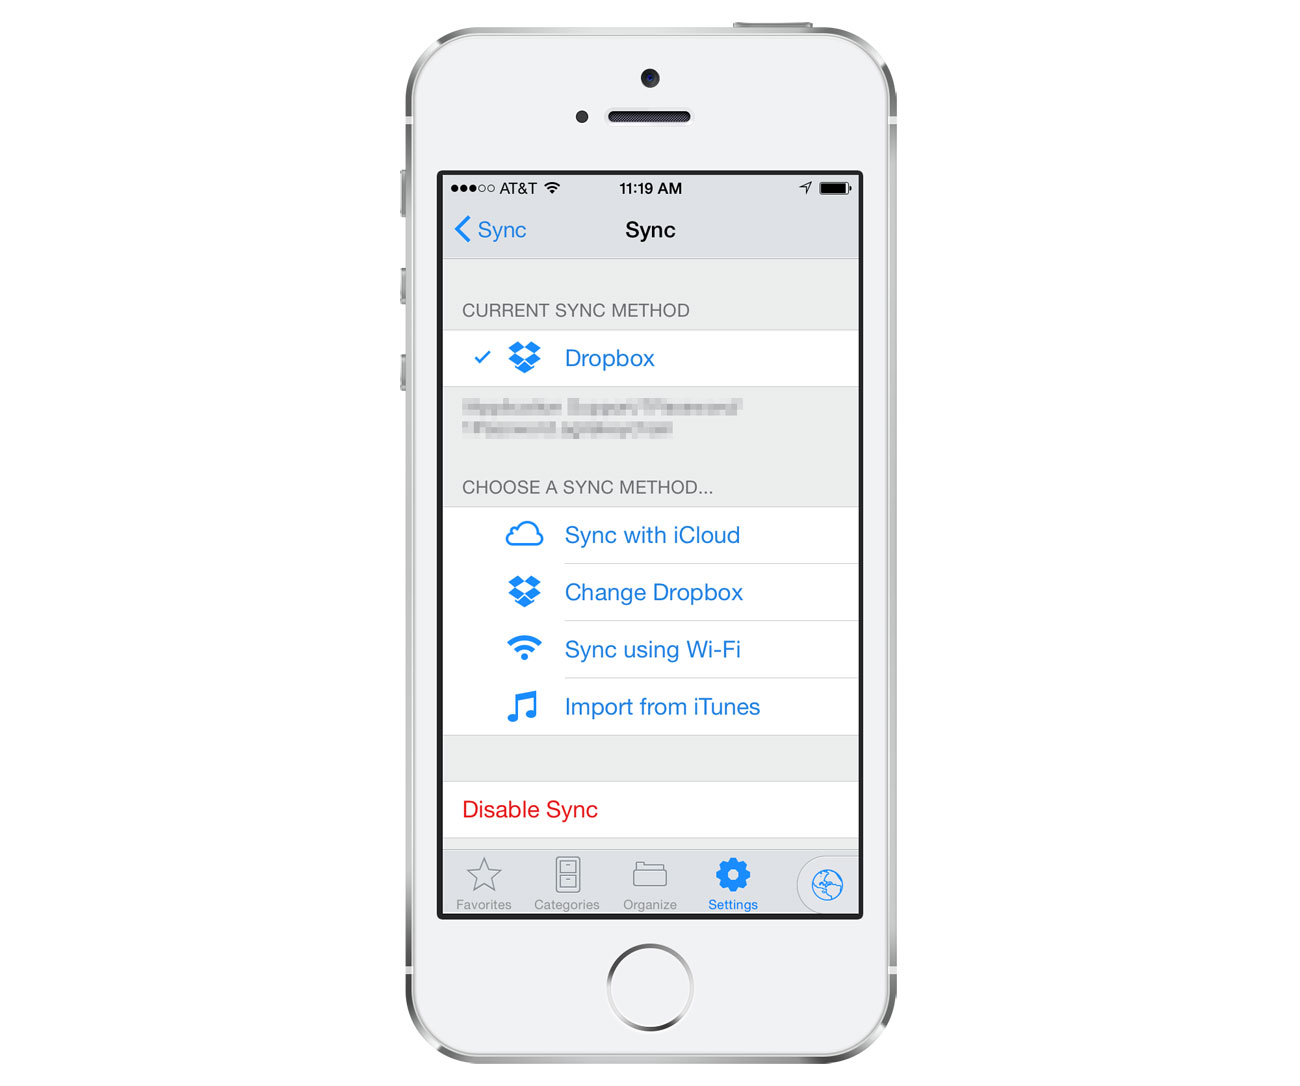 1Password iOS Sync settings